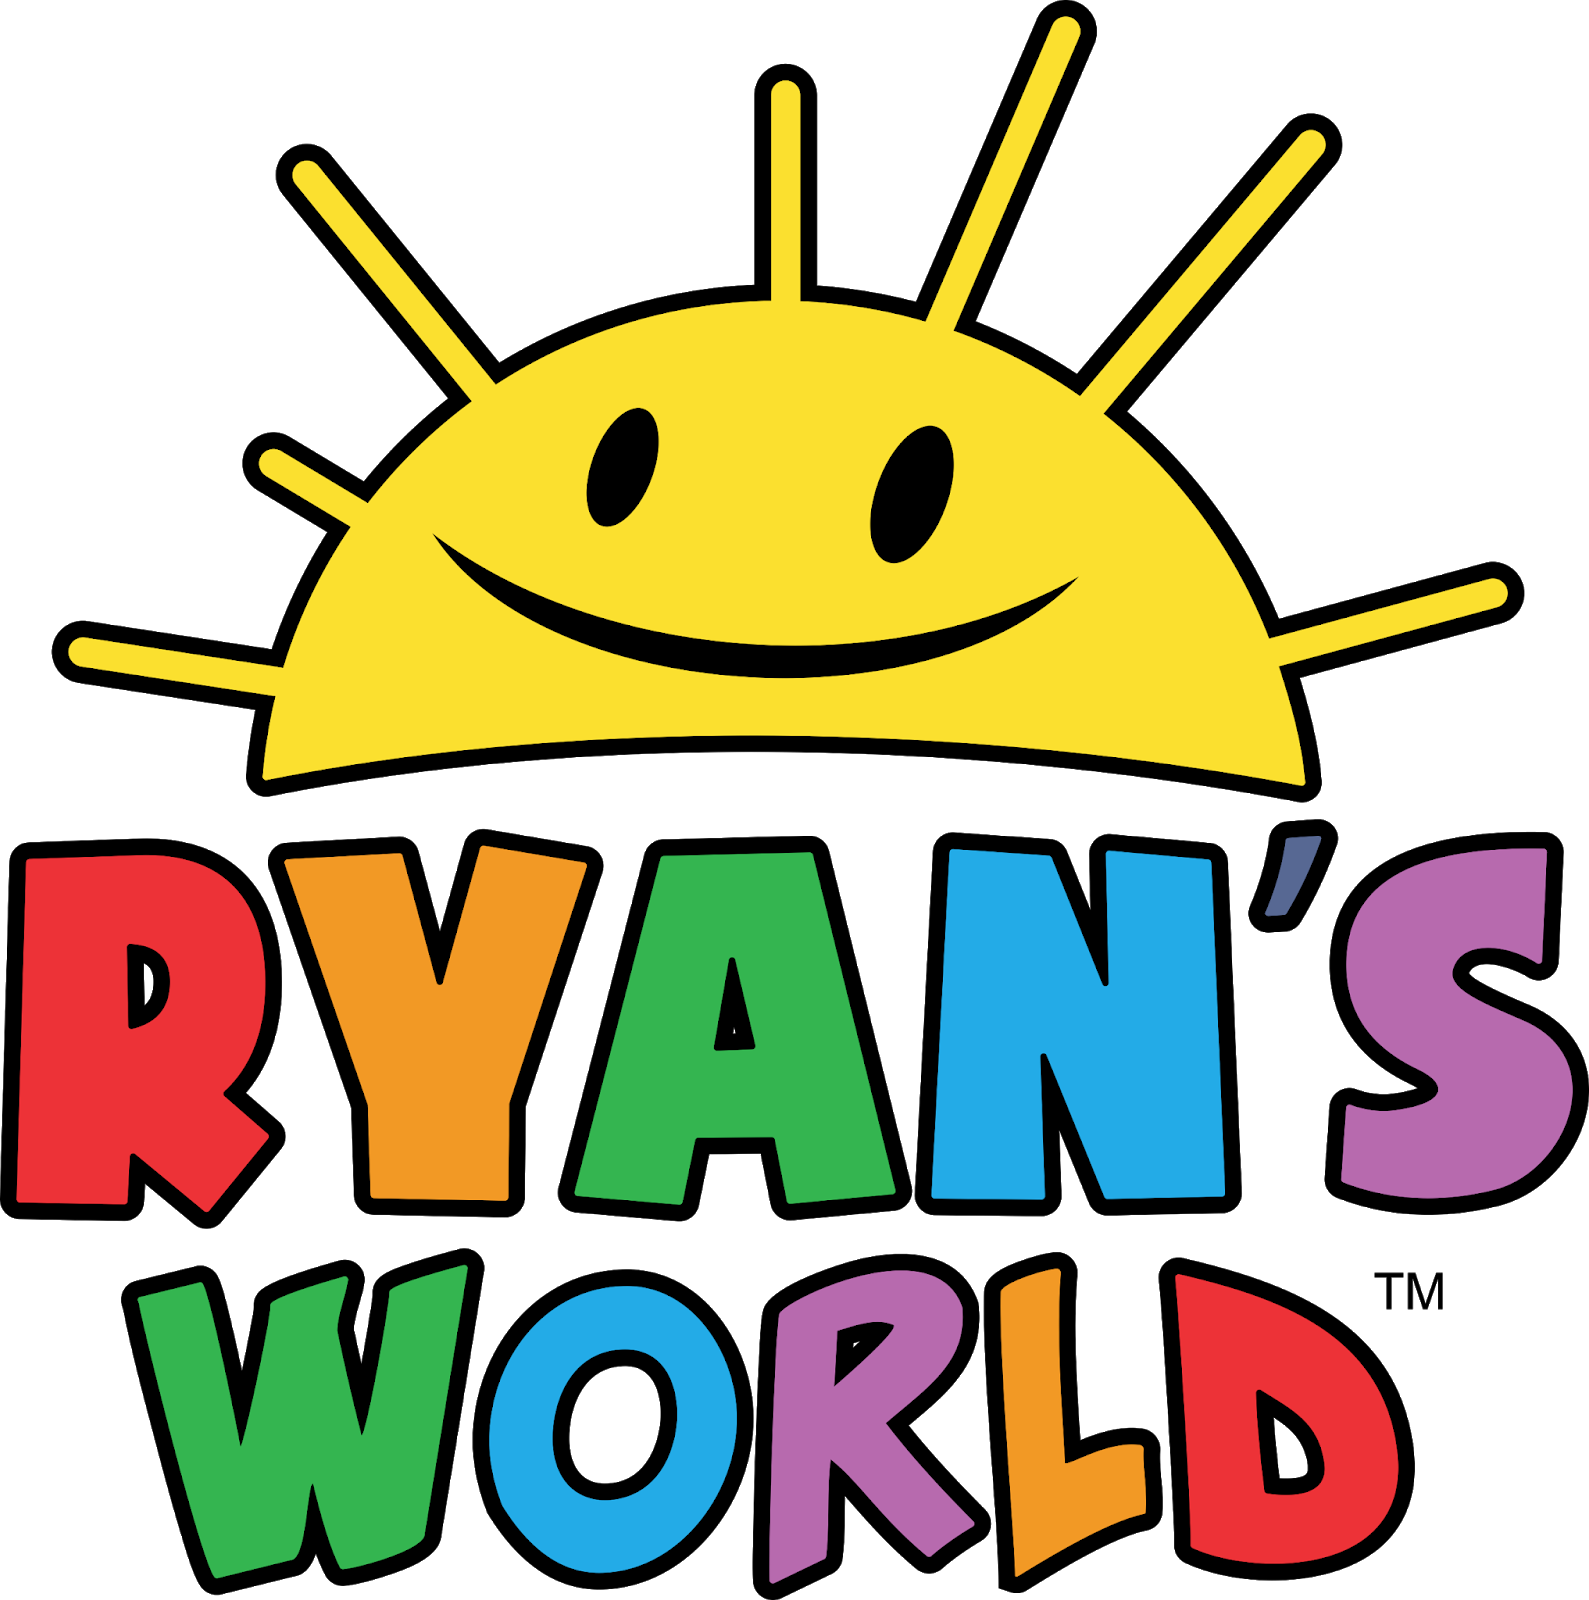 photograph about Ryans Printable Coupons known as Ryan Toys Evaluate Includes Unveiled a Fresh Toy Line Currently Out there